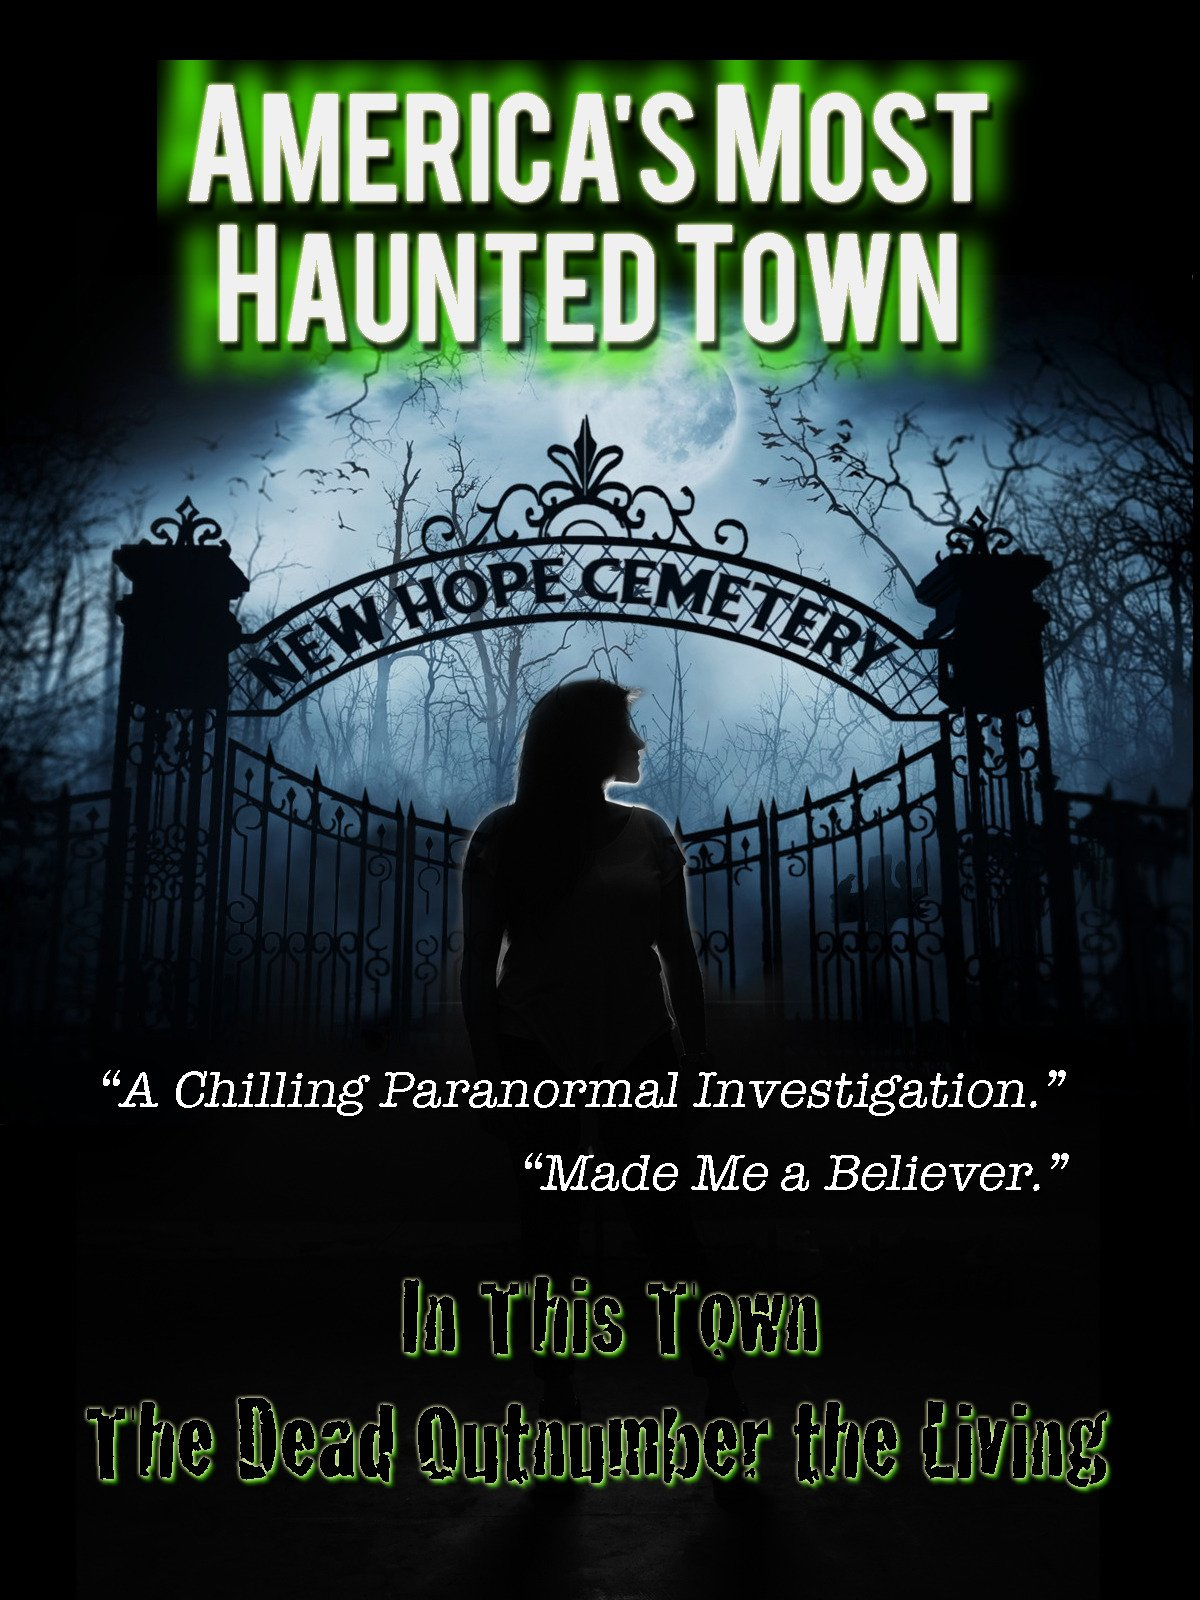 America's Most Haunted Town